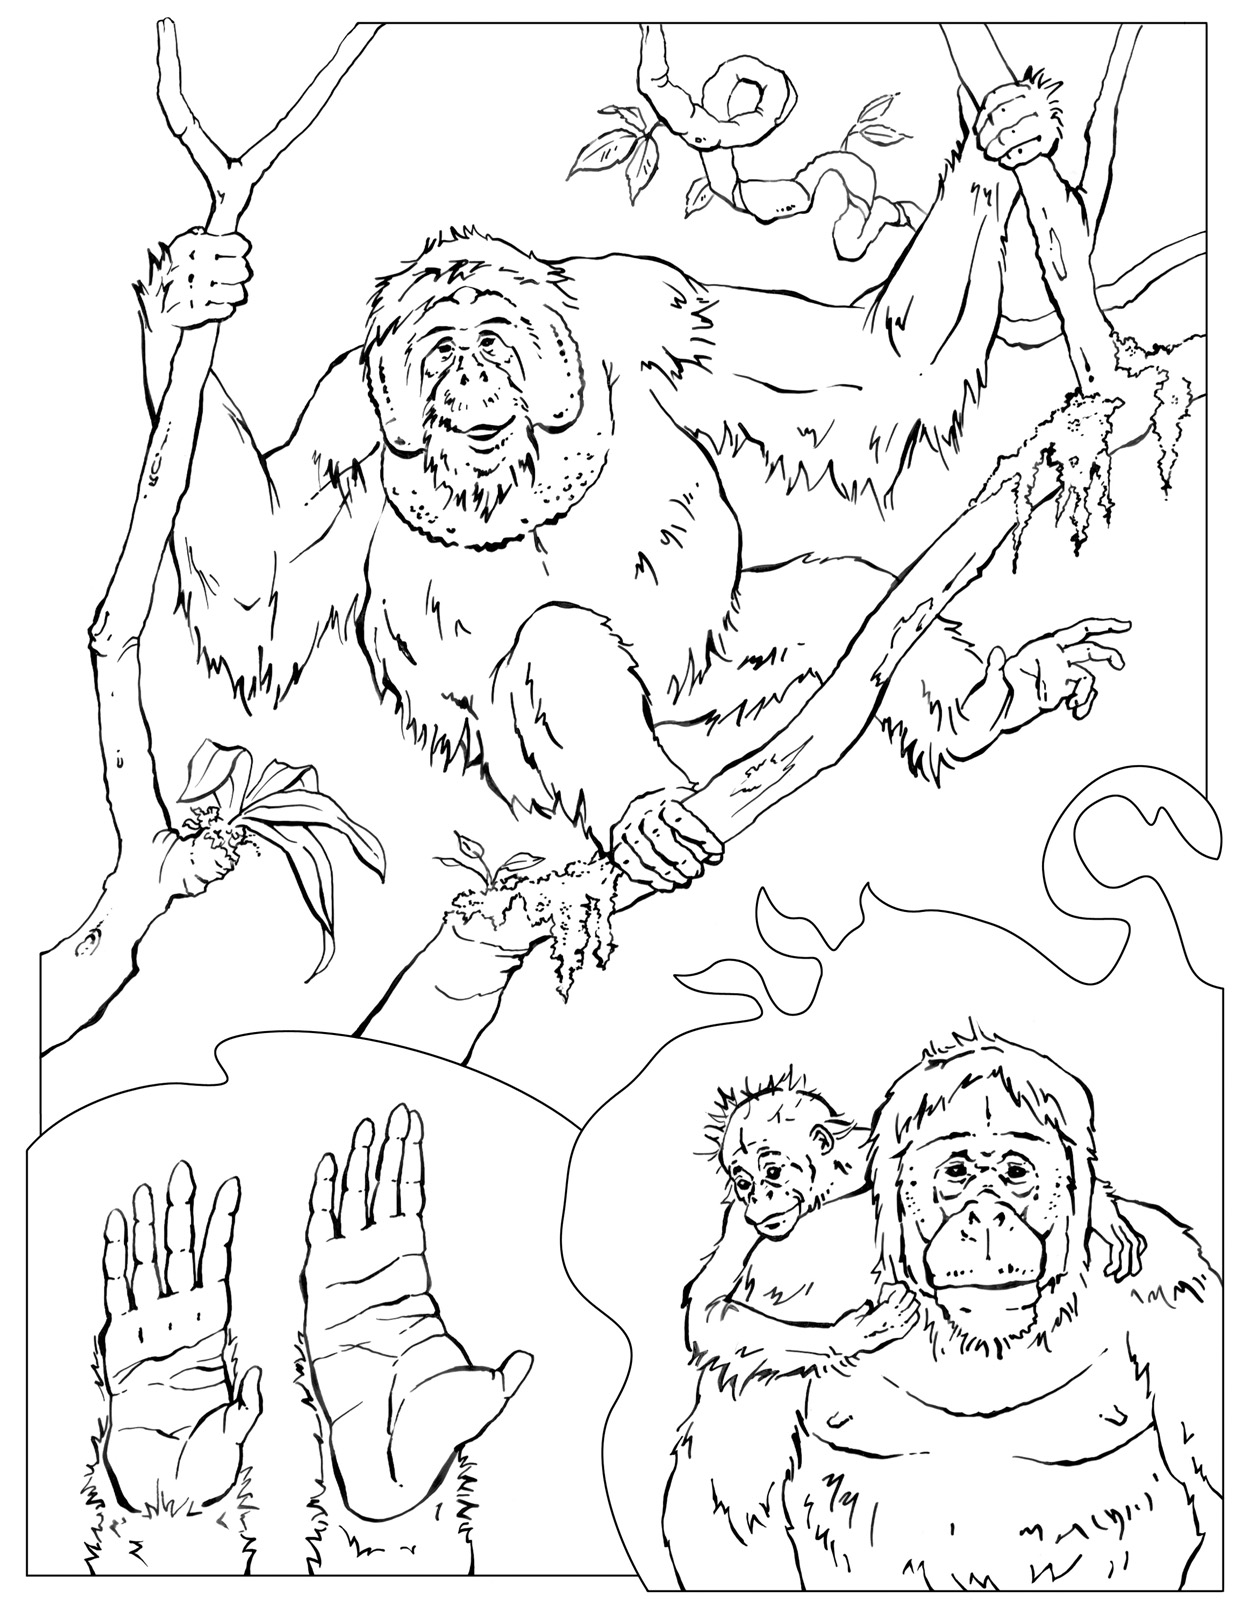 free online coloring printable pages - photo#42